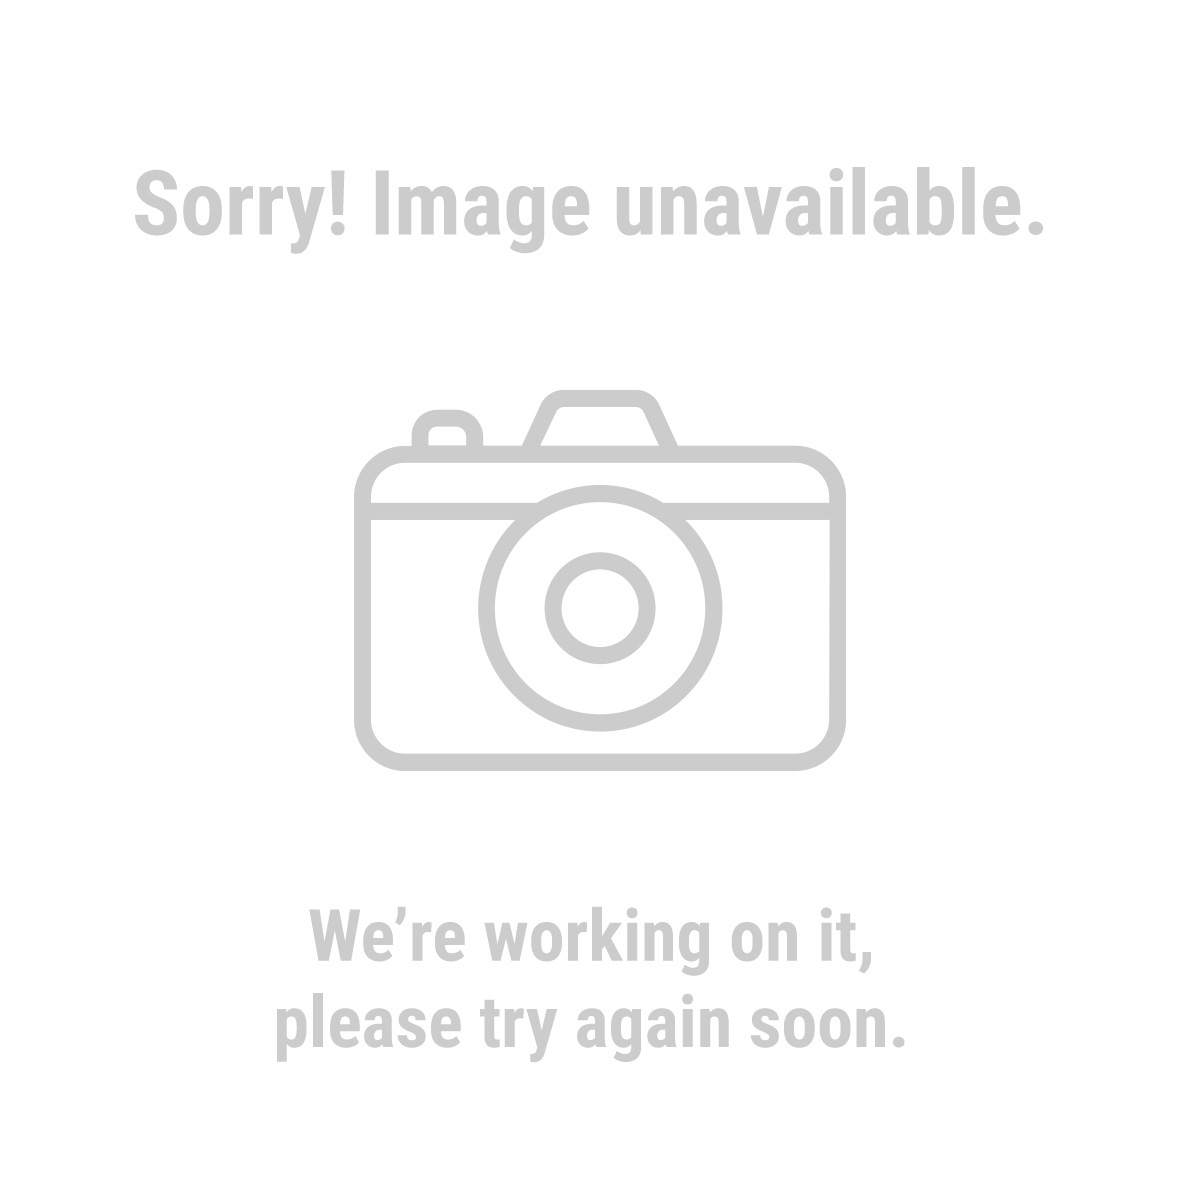 HFT 69136 5 ft. 6 in. x 7 ft. 6 in. Blue All Purpose/Weather Resistant Tarp